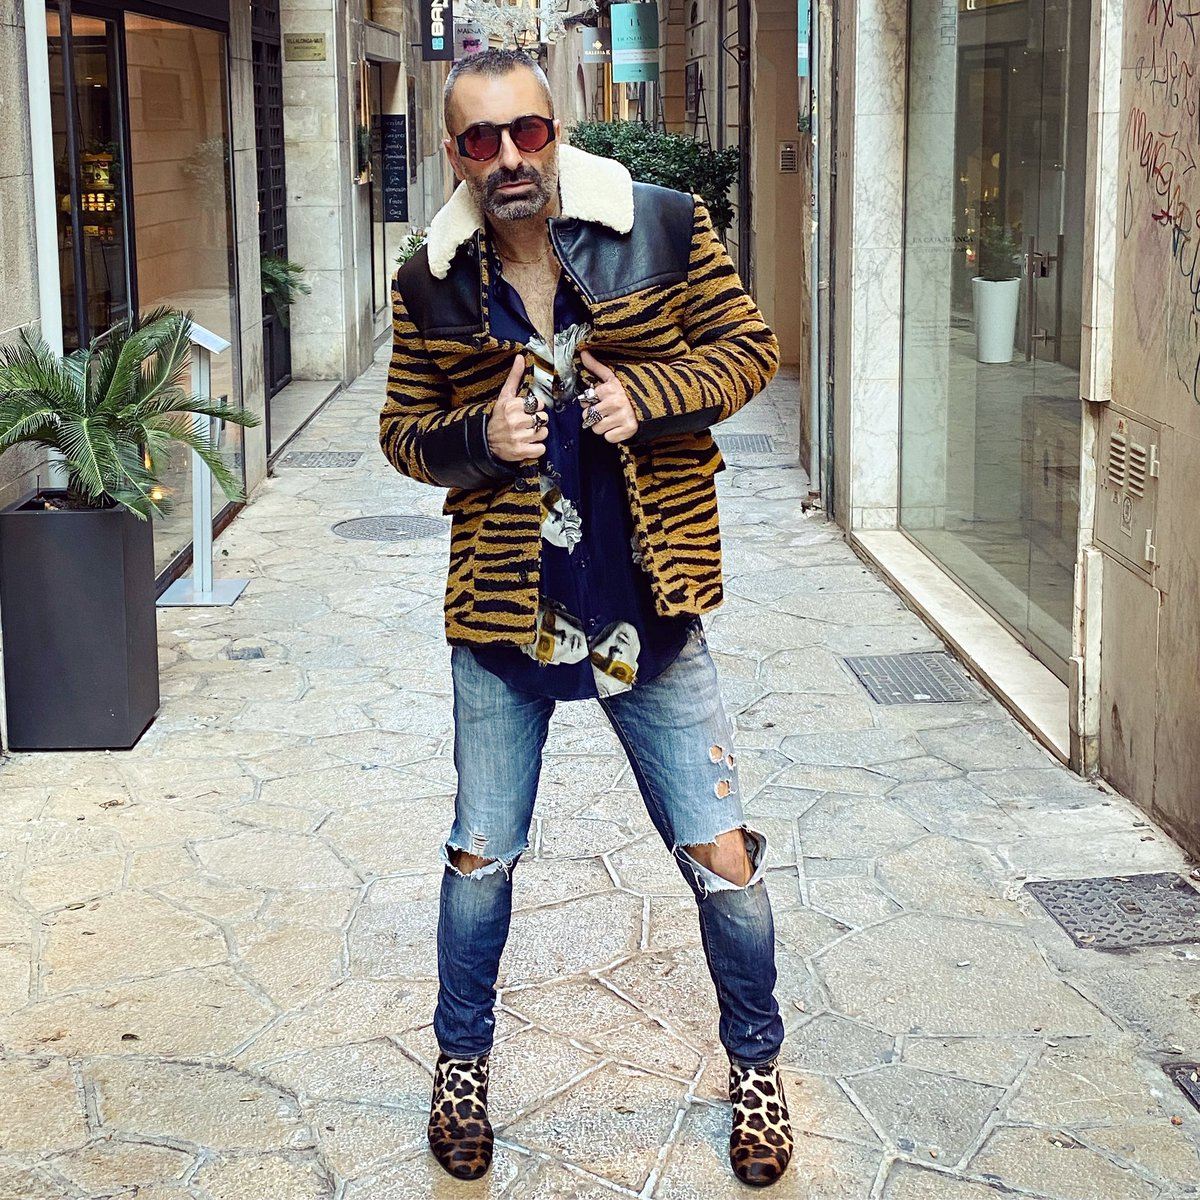 Take a walk on the wild side  #menswear #fashionista #streetstyle #animalprint #mallorca #palmademallorca #stellamccartney #christianlouboutin #hoscos #outfitoftheday #men<br>http://pic.twitter.com/4cEsApJ64S